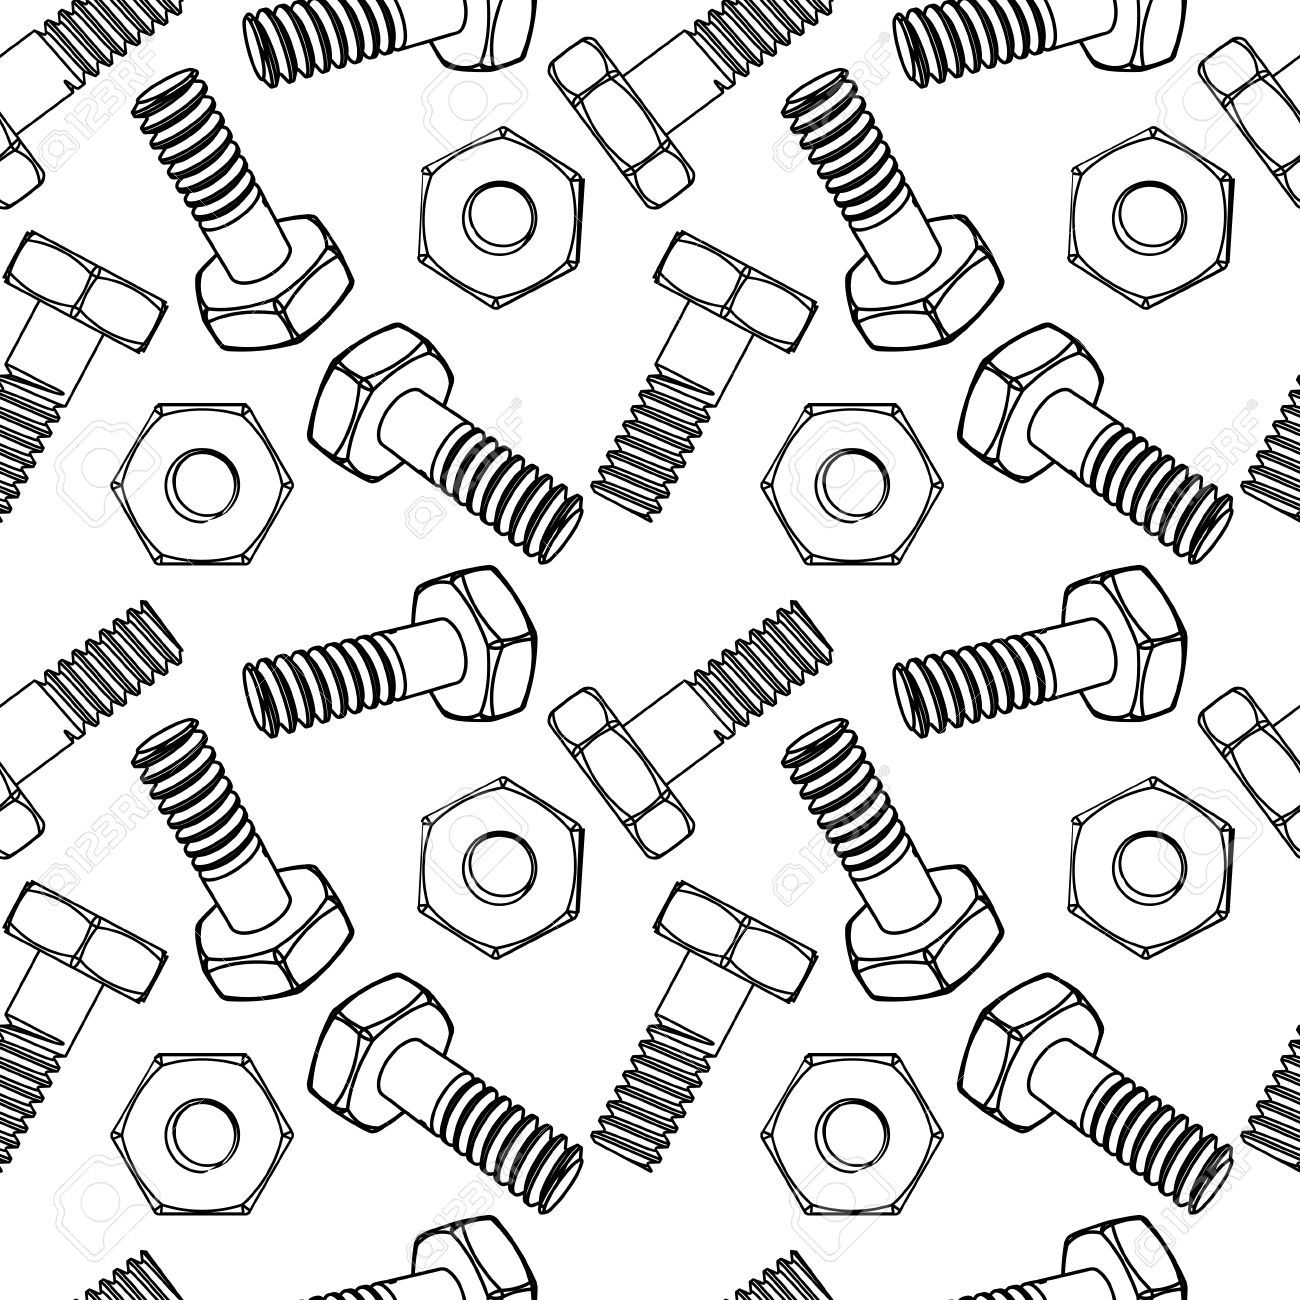 nuts and bolts pictures clip art.